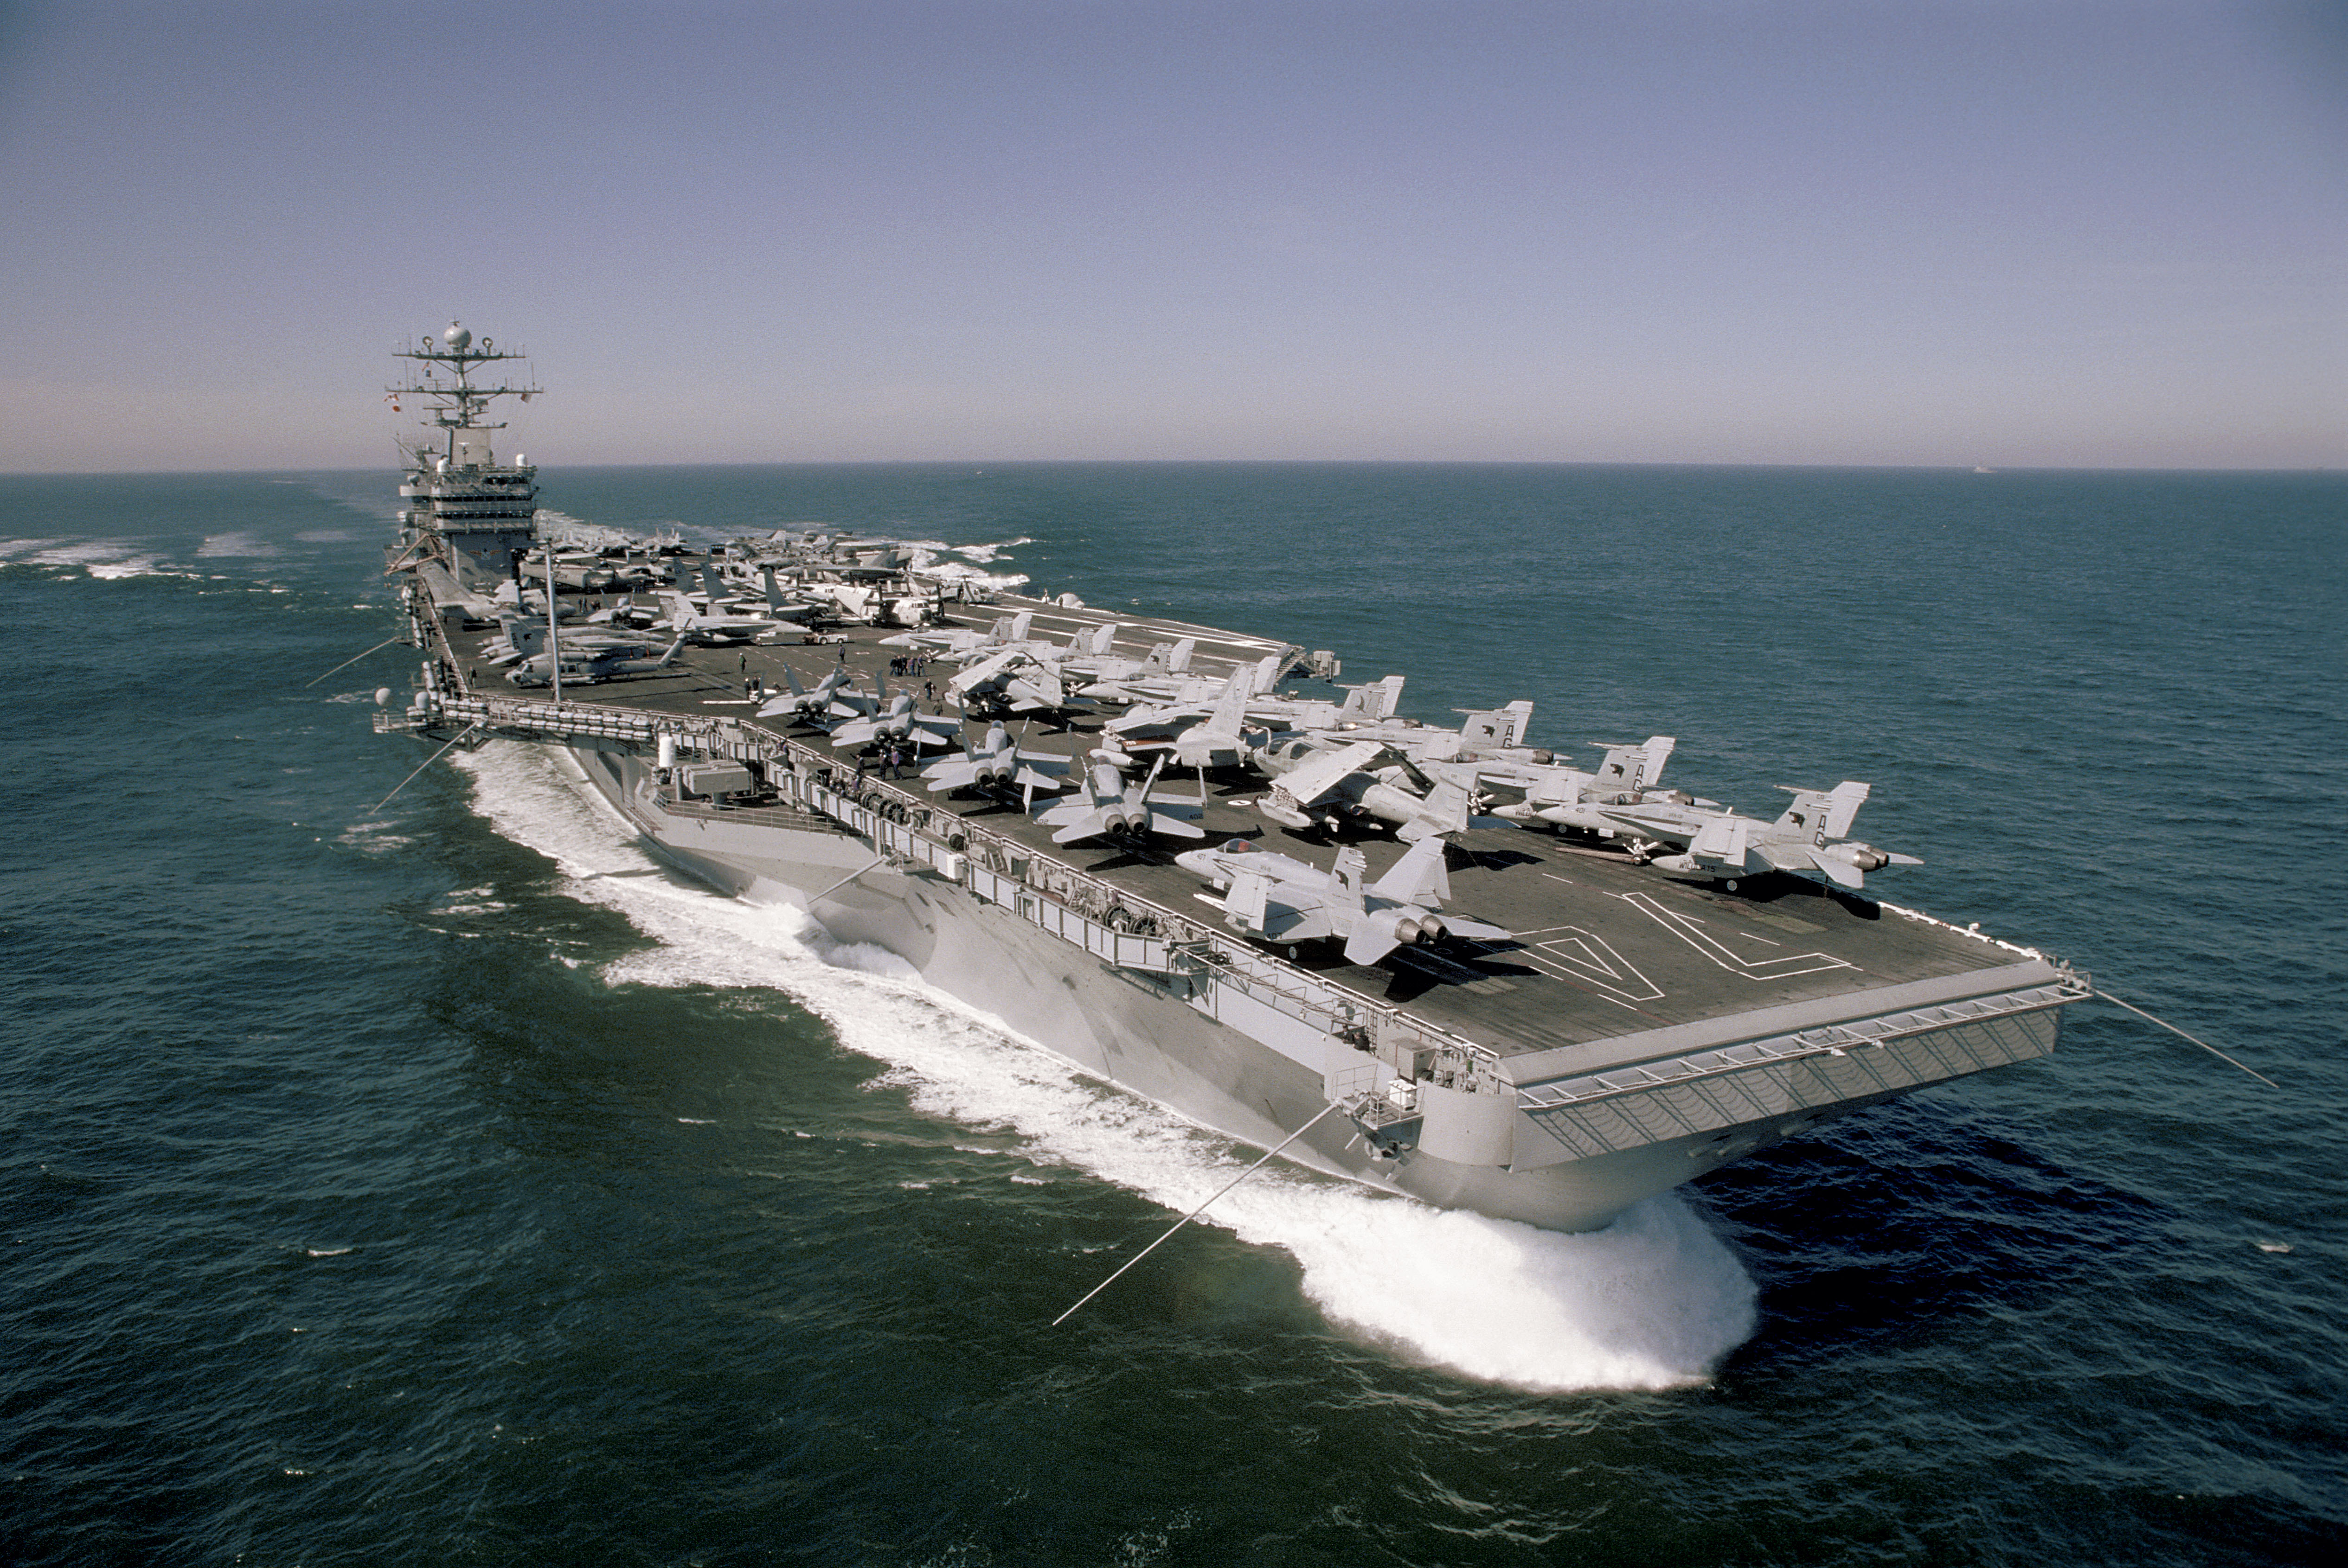 Huntington Ingalls Industries Awarded Advance Planning Contract for USS John C. Stennis (CVN 74) RCOH